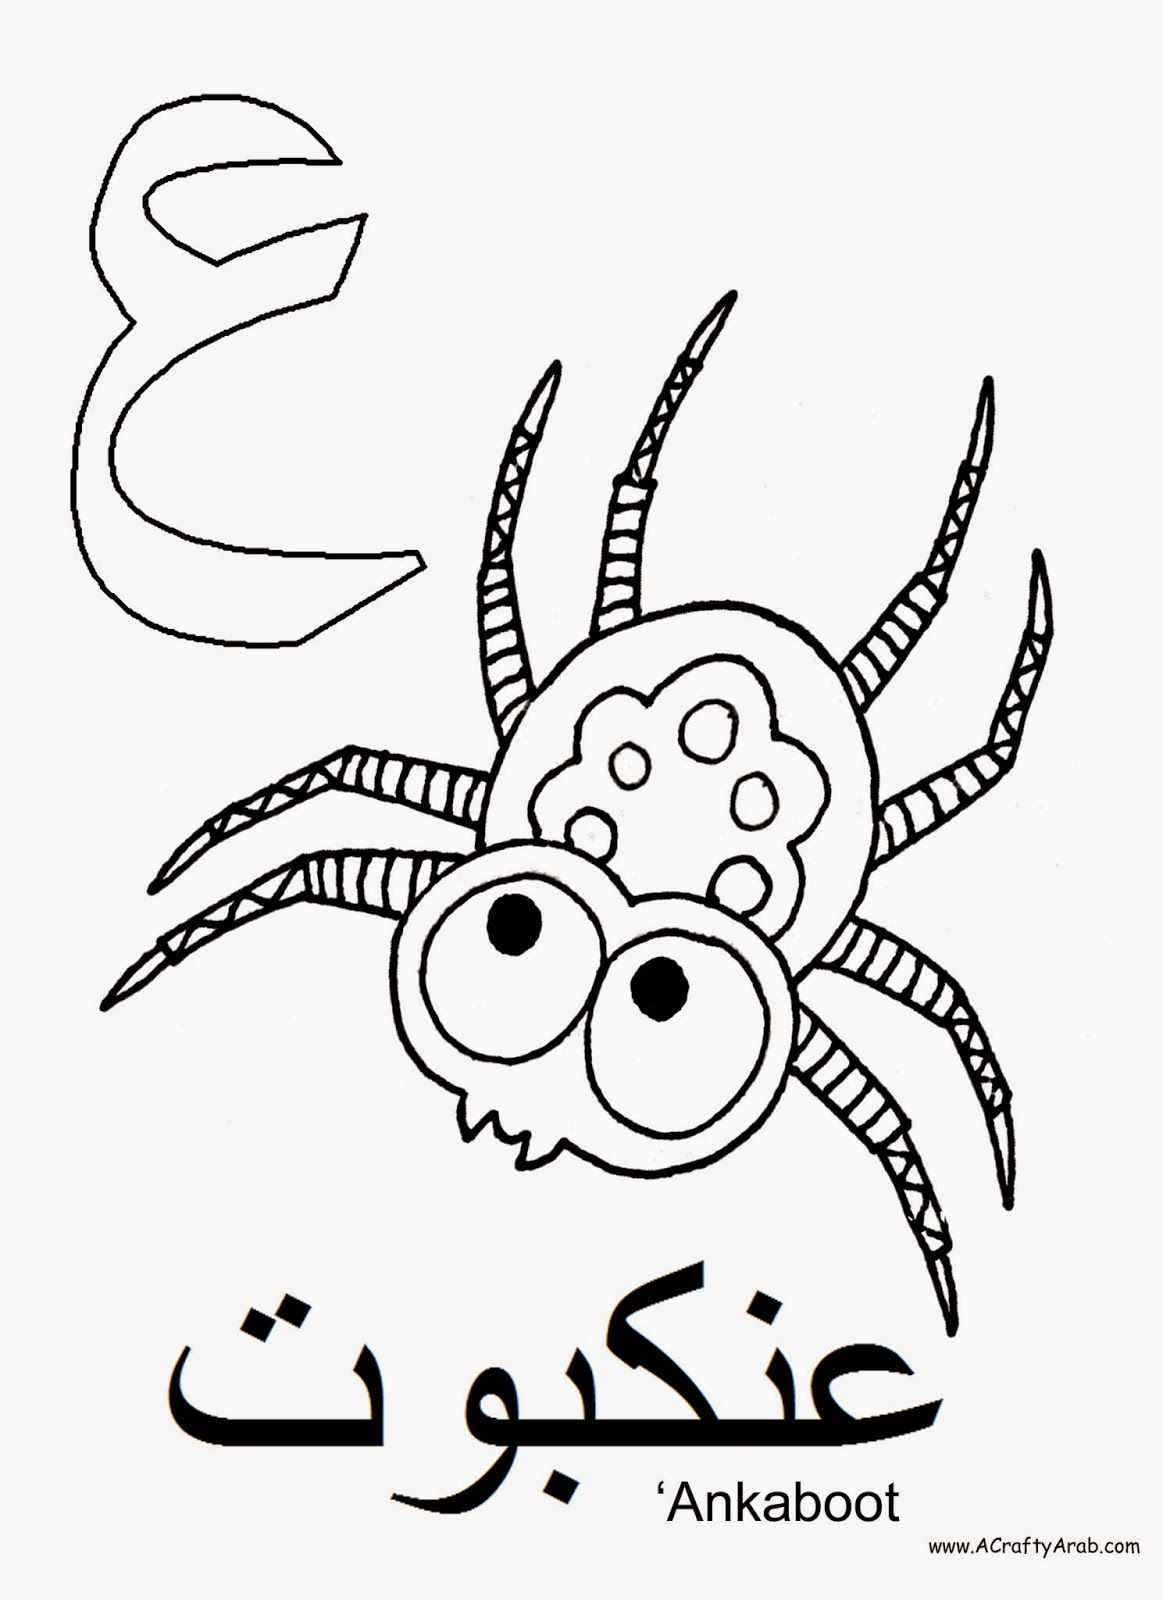 Printable Pages Of The Arabic Alphabet To Color Boyama Sayfalari